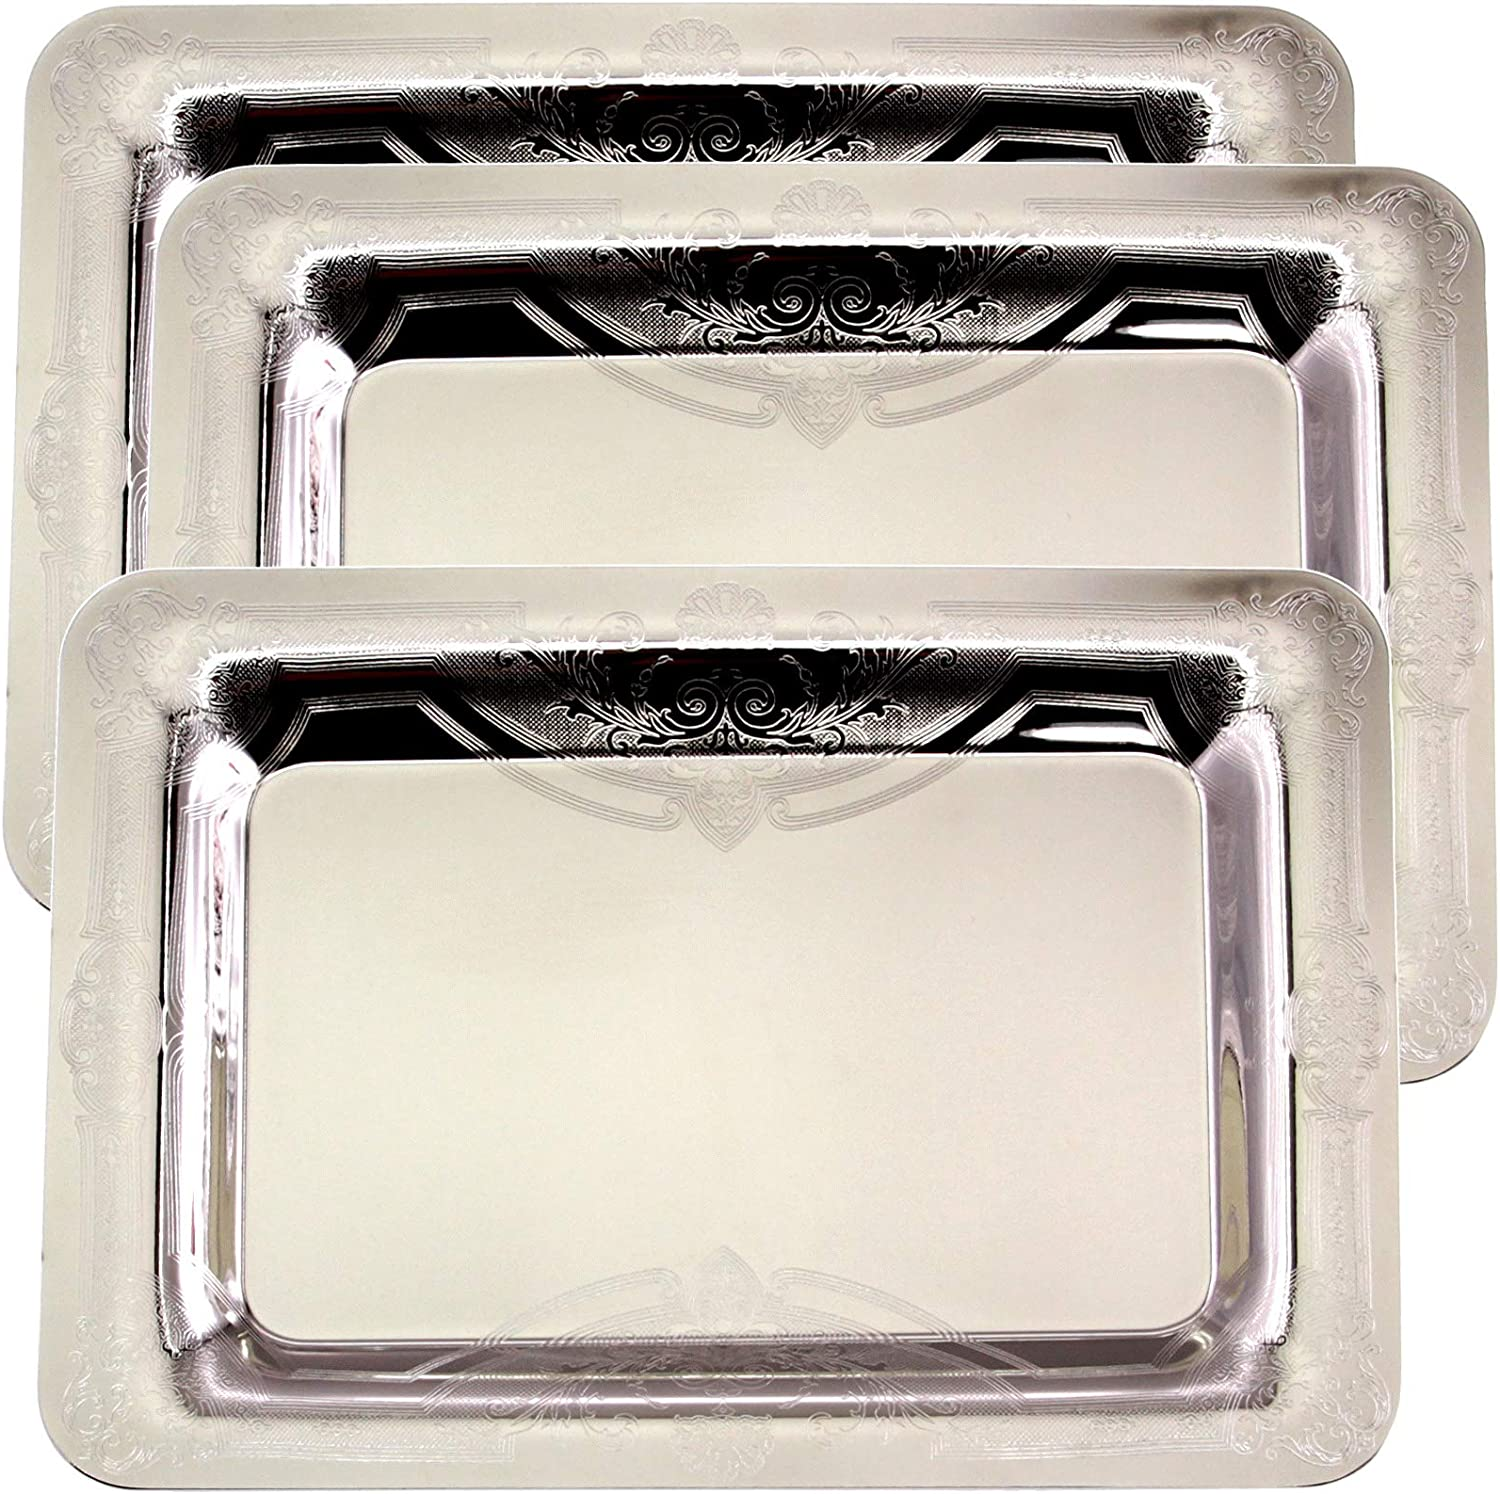 Maro Megastore (Pack of 3) 13.1 Inch x 9.1 Inch Oblong Chrome Plated Mirror Serving Tray Stylish Design Floral Engraved Edge Decorative Party Birthday Wedding Dessert Buffet Wine Platter Plate CC-748